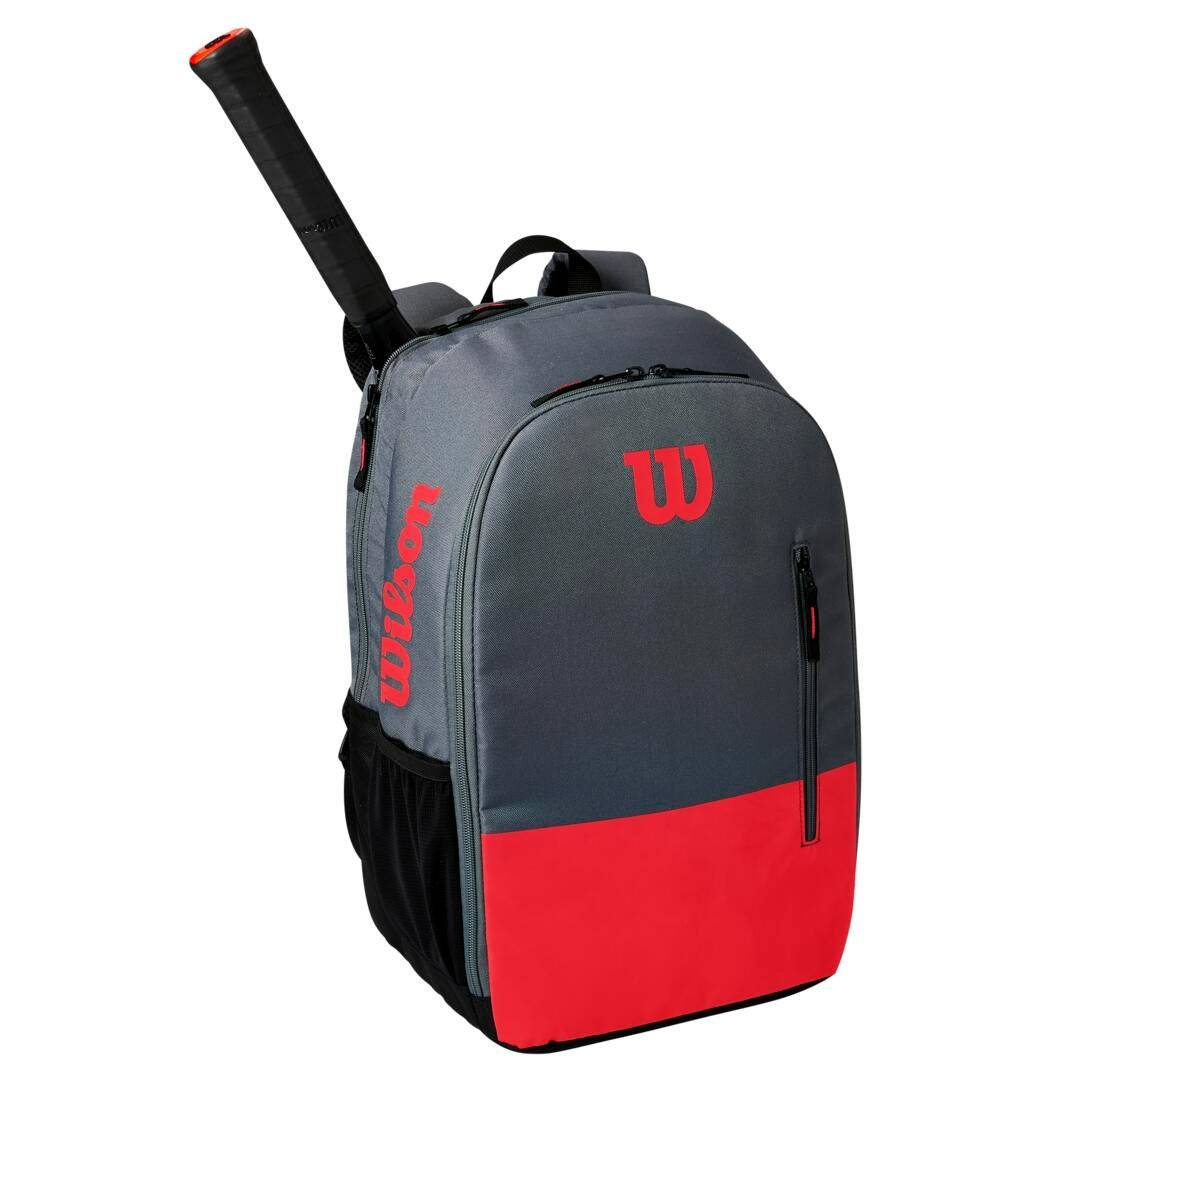 Wilson Team Backpack in Red / Gray  - Unisex - Red/Gray